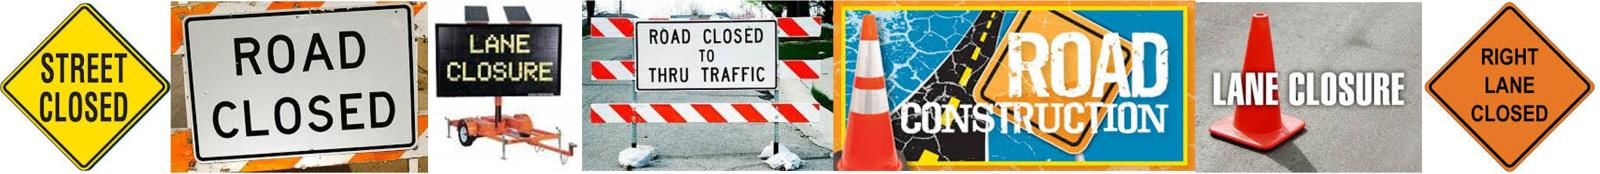 Street Lane Closure Banner